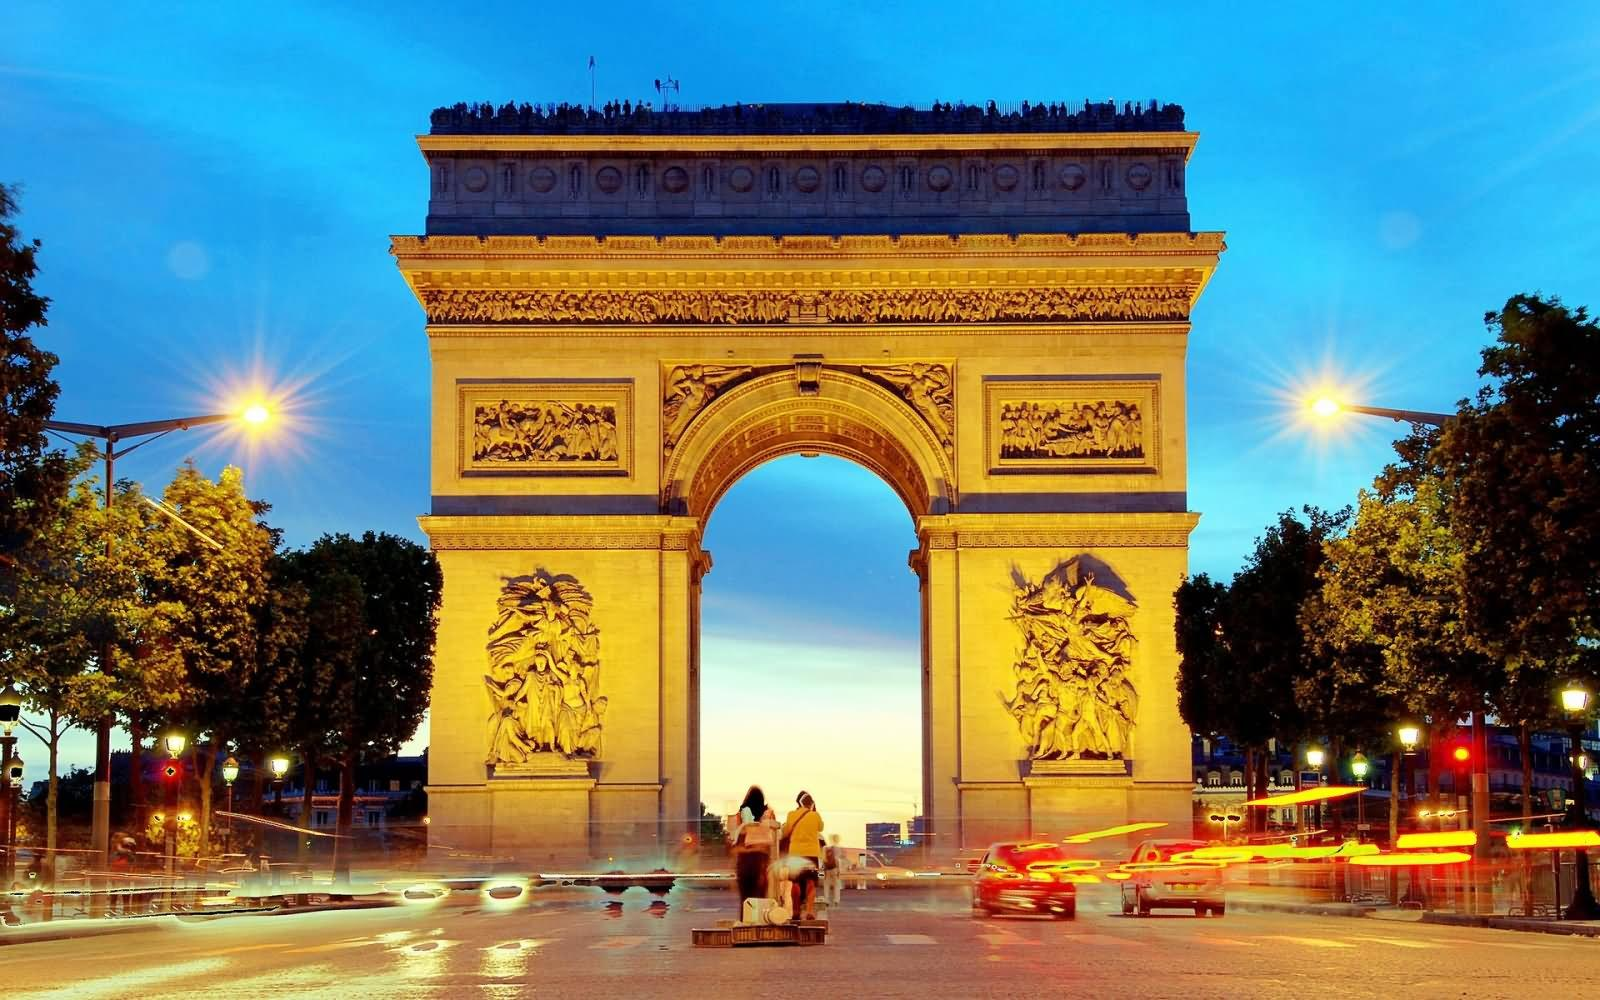 50 Awesome Arc de Triomphe Night Pictures